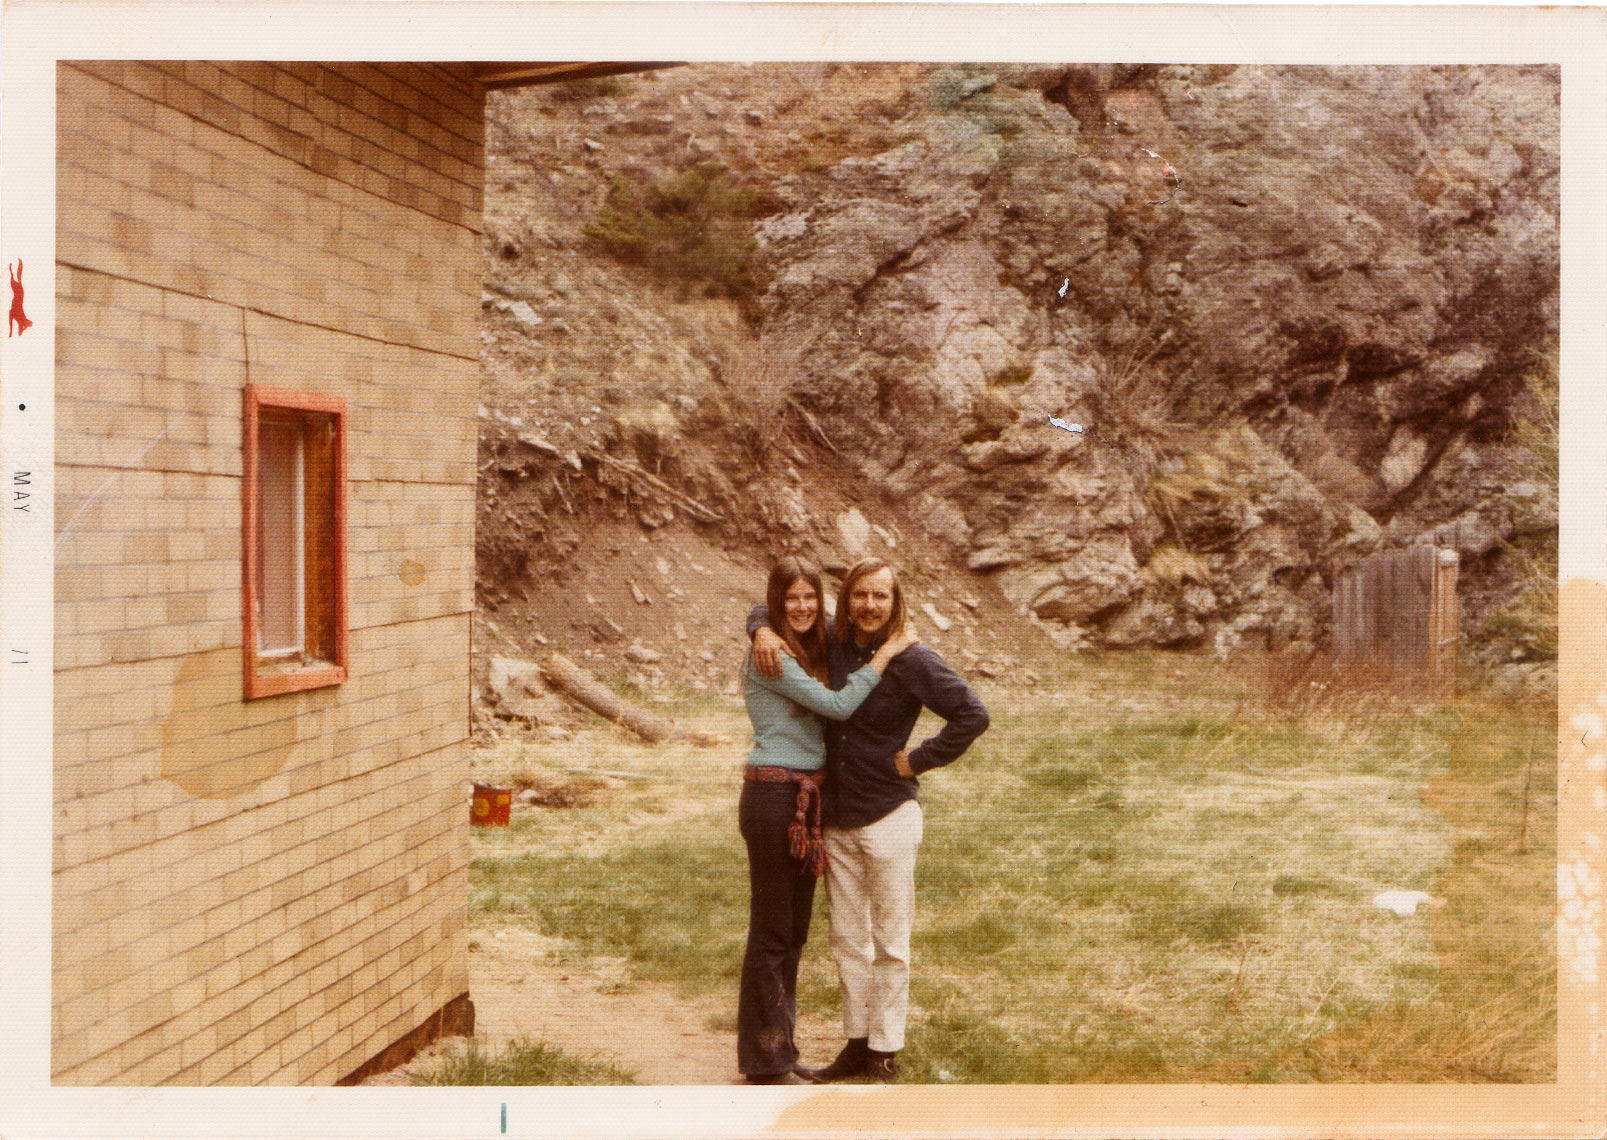 Gayle Engels & Jack Orbin in Colorado